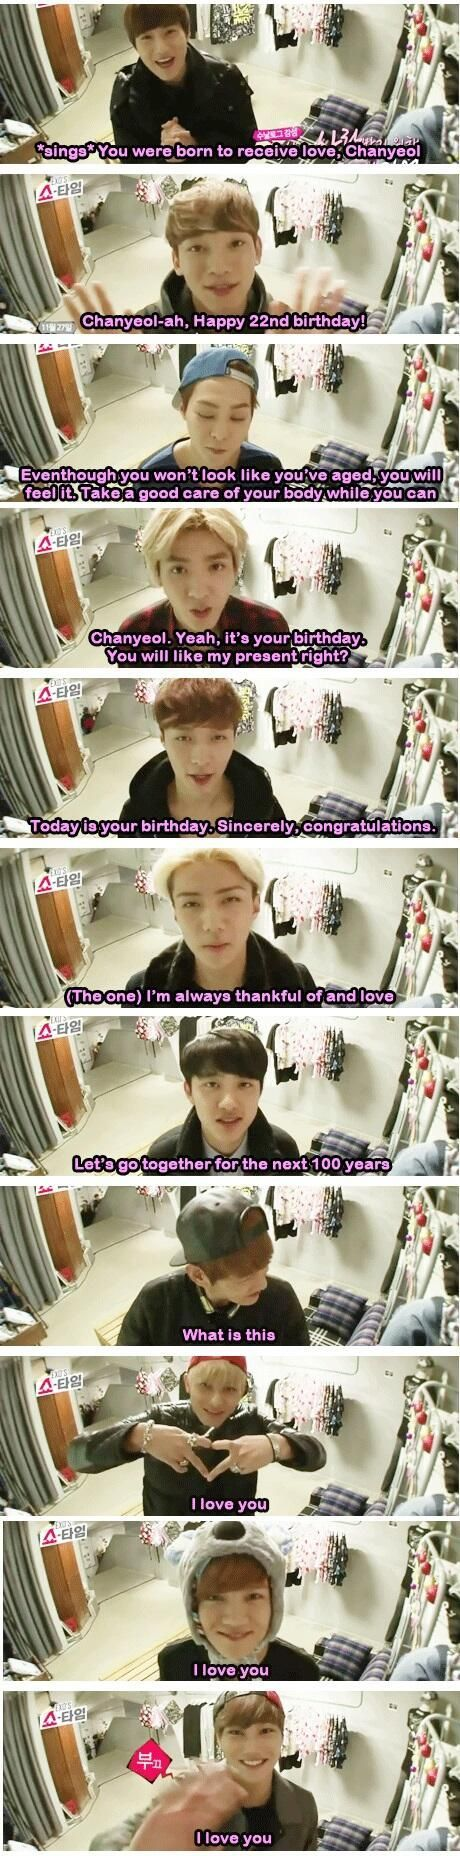 Remember this? Baekhyun's message is just so sweet yet it's not sense ^^